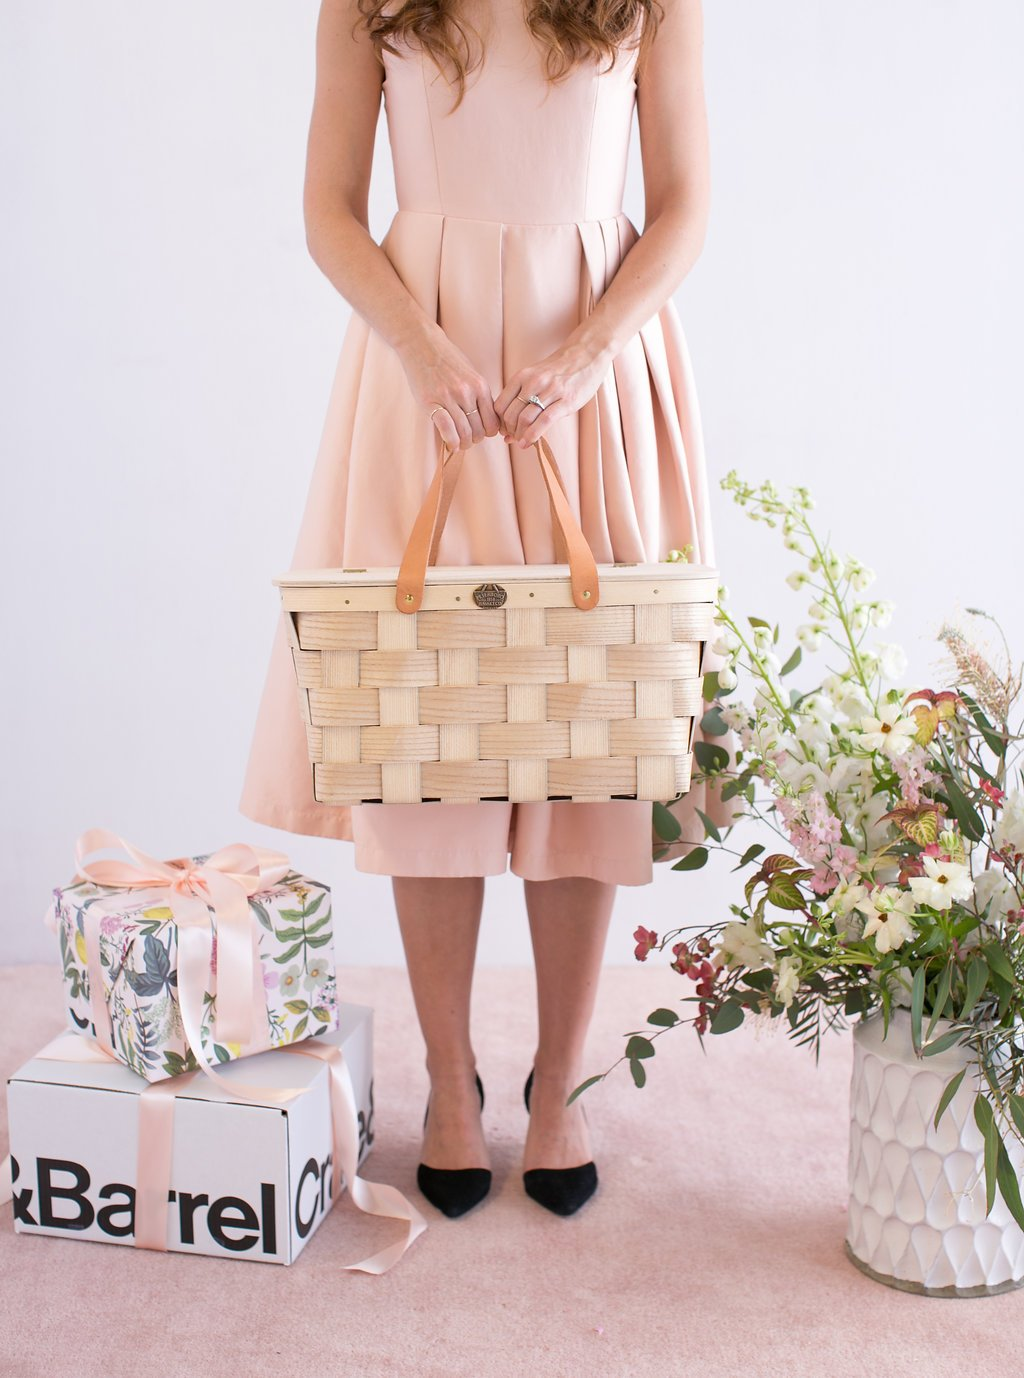 Bride holding picnic basket standing next to Crate and Barrel boxes at spring wedding shower